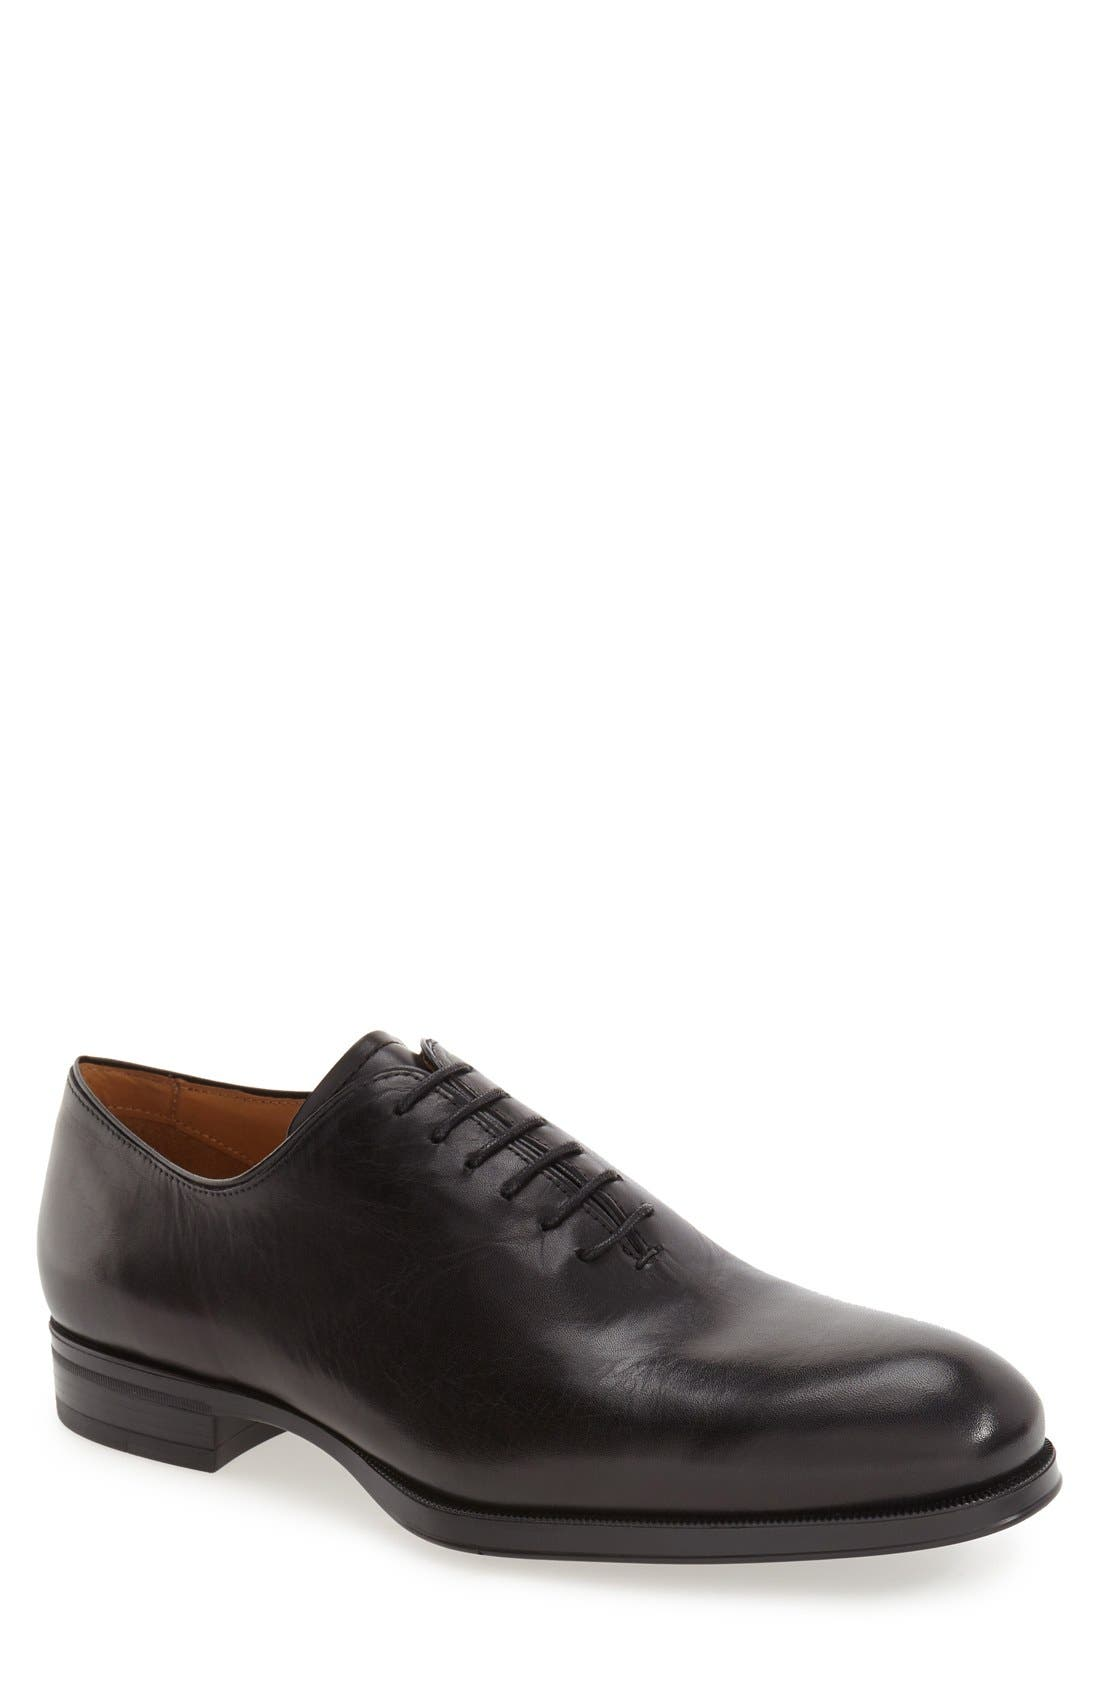 'Tarby' Wholecut Oxford,                         Main,                         color,